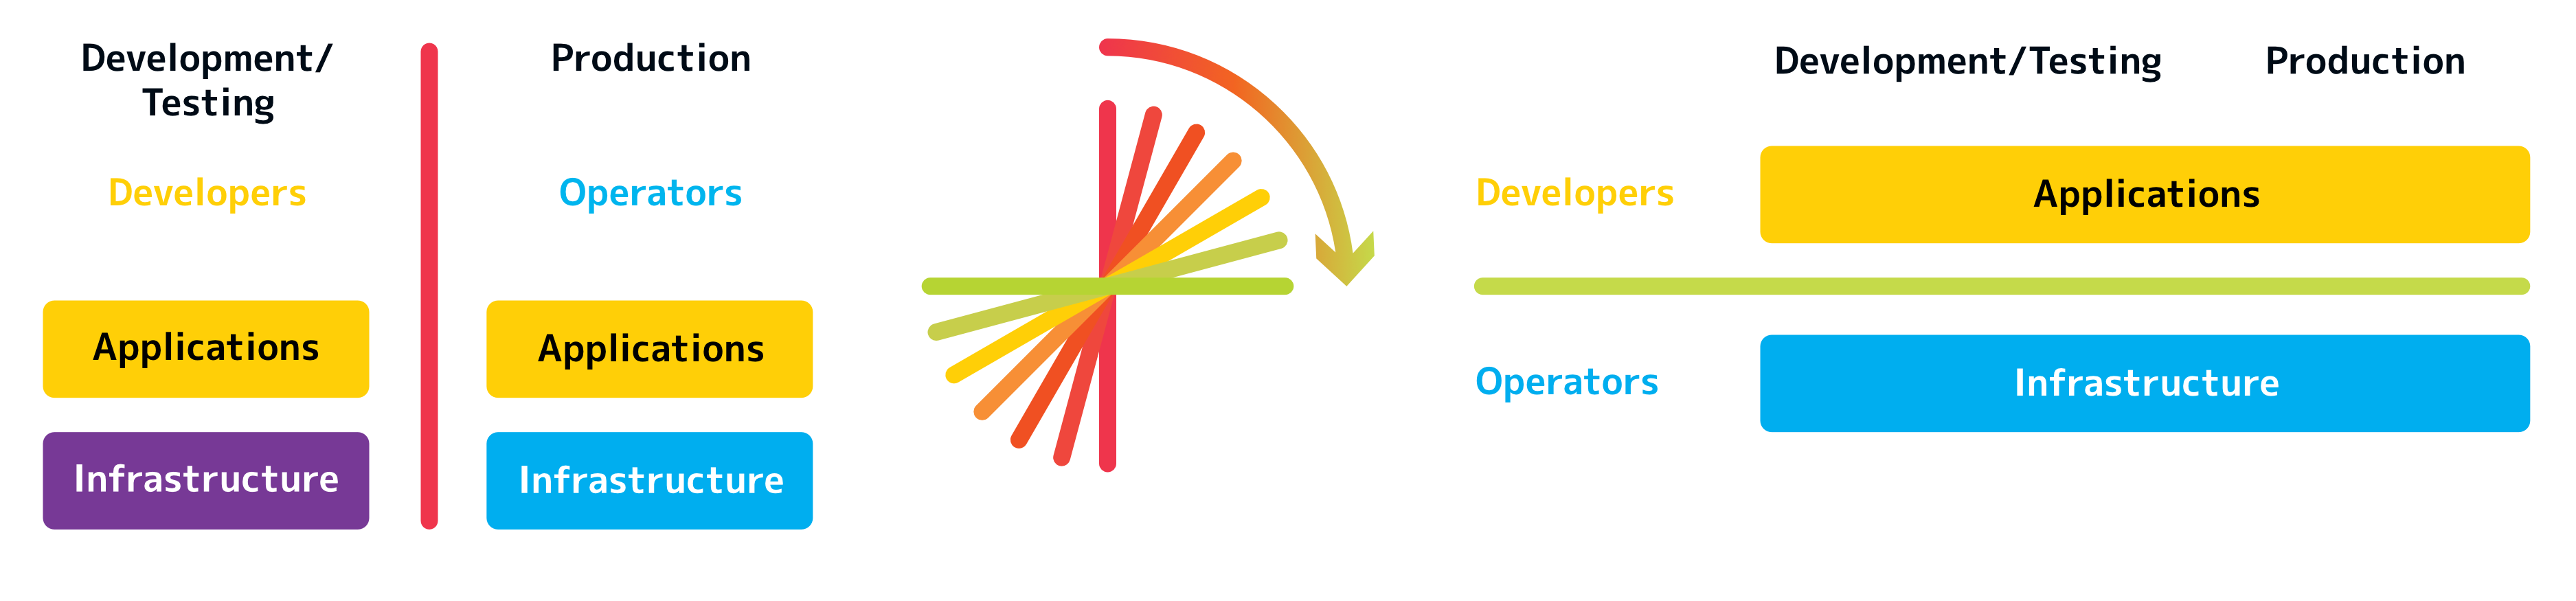 The interface between Dev and Ops is tipping